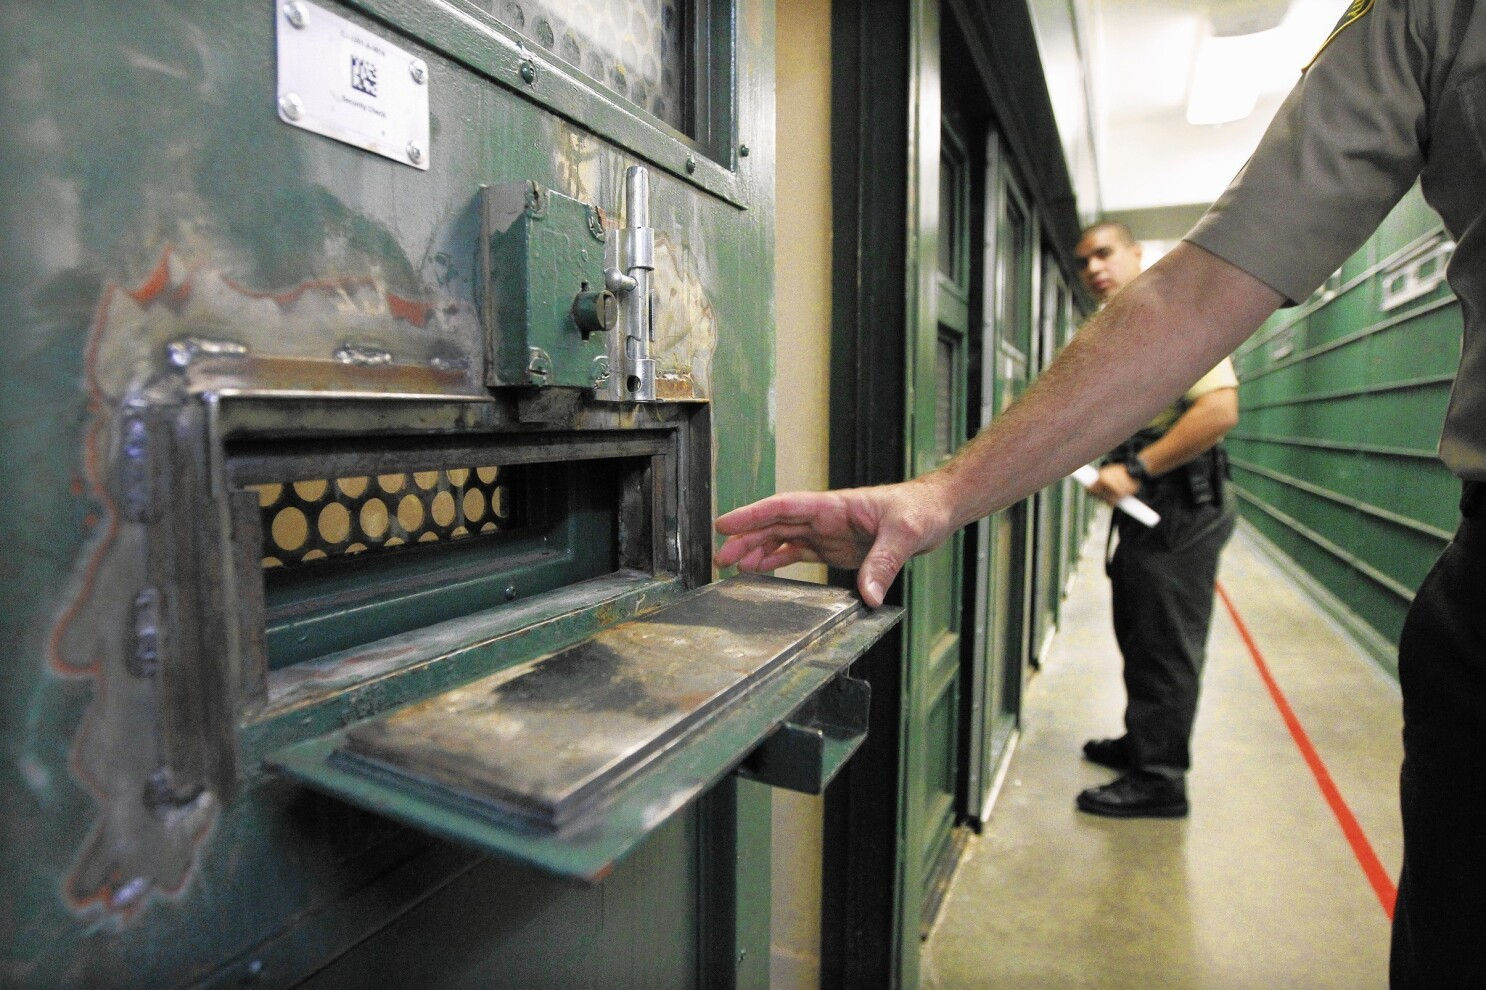 Jail cracks down on inmates' pungent assaults on deputies